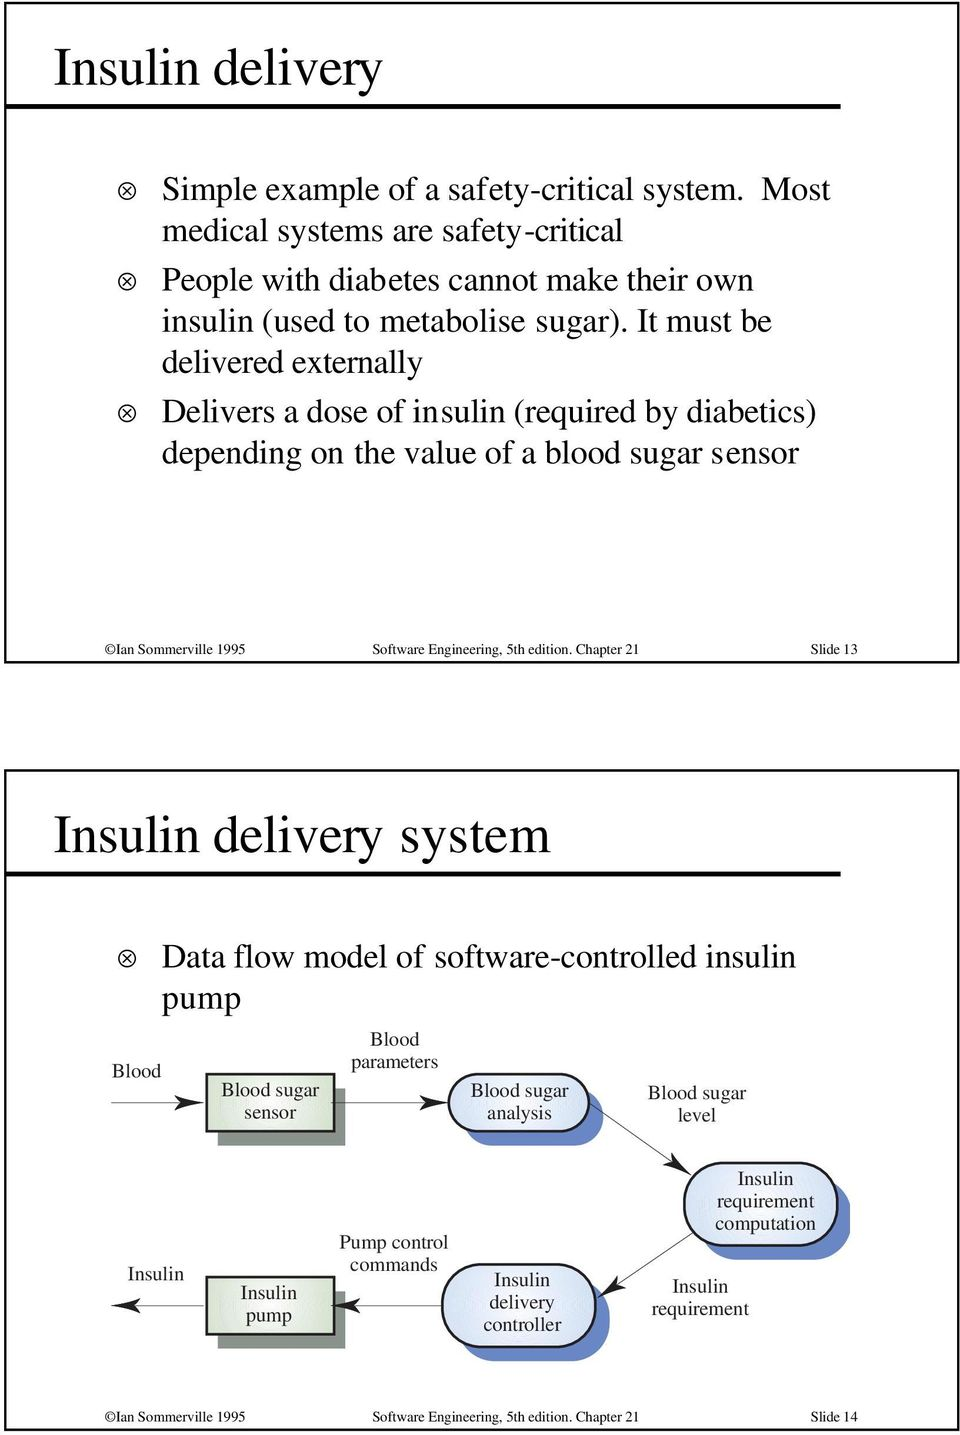 Chapter 21 Slide 13 Insulin delivery system Blood Data flow model of software-controlled insulin pump Blood sugar sensor Blood parameters Blood sugar analysis Blood sugar level Insulin